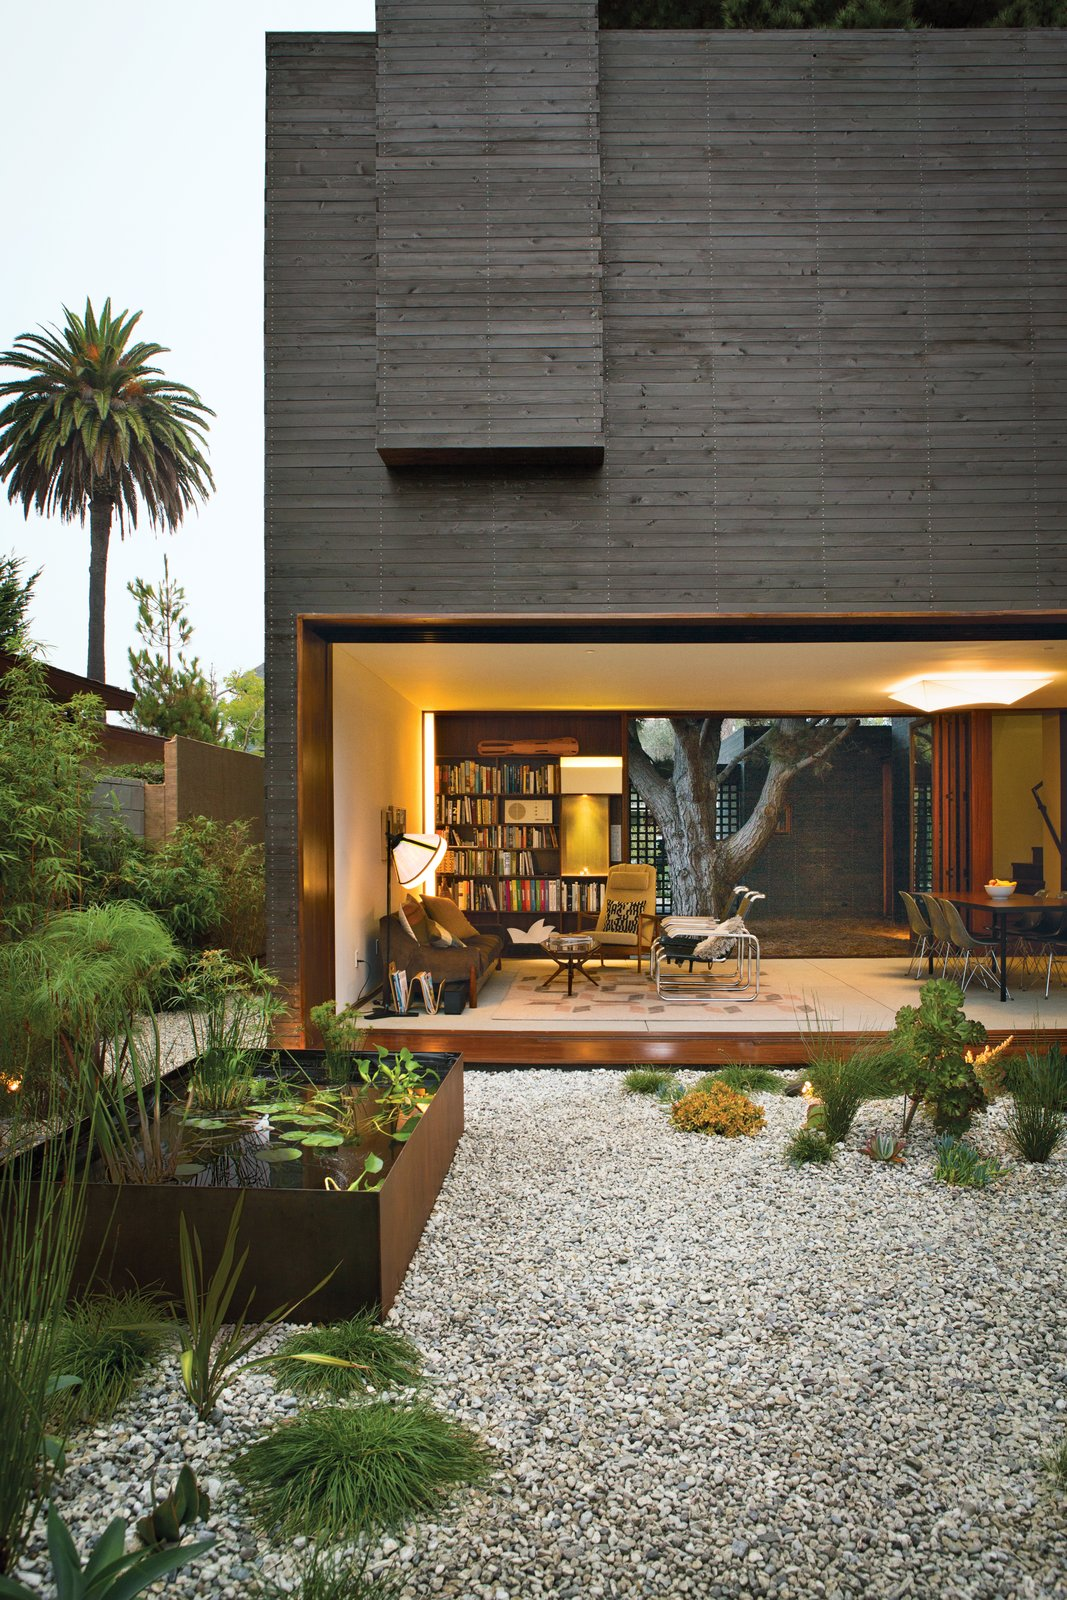 Outdoor, Gardens, Back Yard, Trees, Walkways, Hardscapes, and Garden Architectural designer Sebastian Mariscal and project manager Jeff Svitak created a house in Venice, California, for Michael and Tamami Sylvester. Known as Dwell Home Venice for its role as an exemplification of modern architecture, the house is an homage to indoor-outdoor living. Photo by Coral von Zumwalt.  Outdoor from A Modern Bungalow in Venice Beach